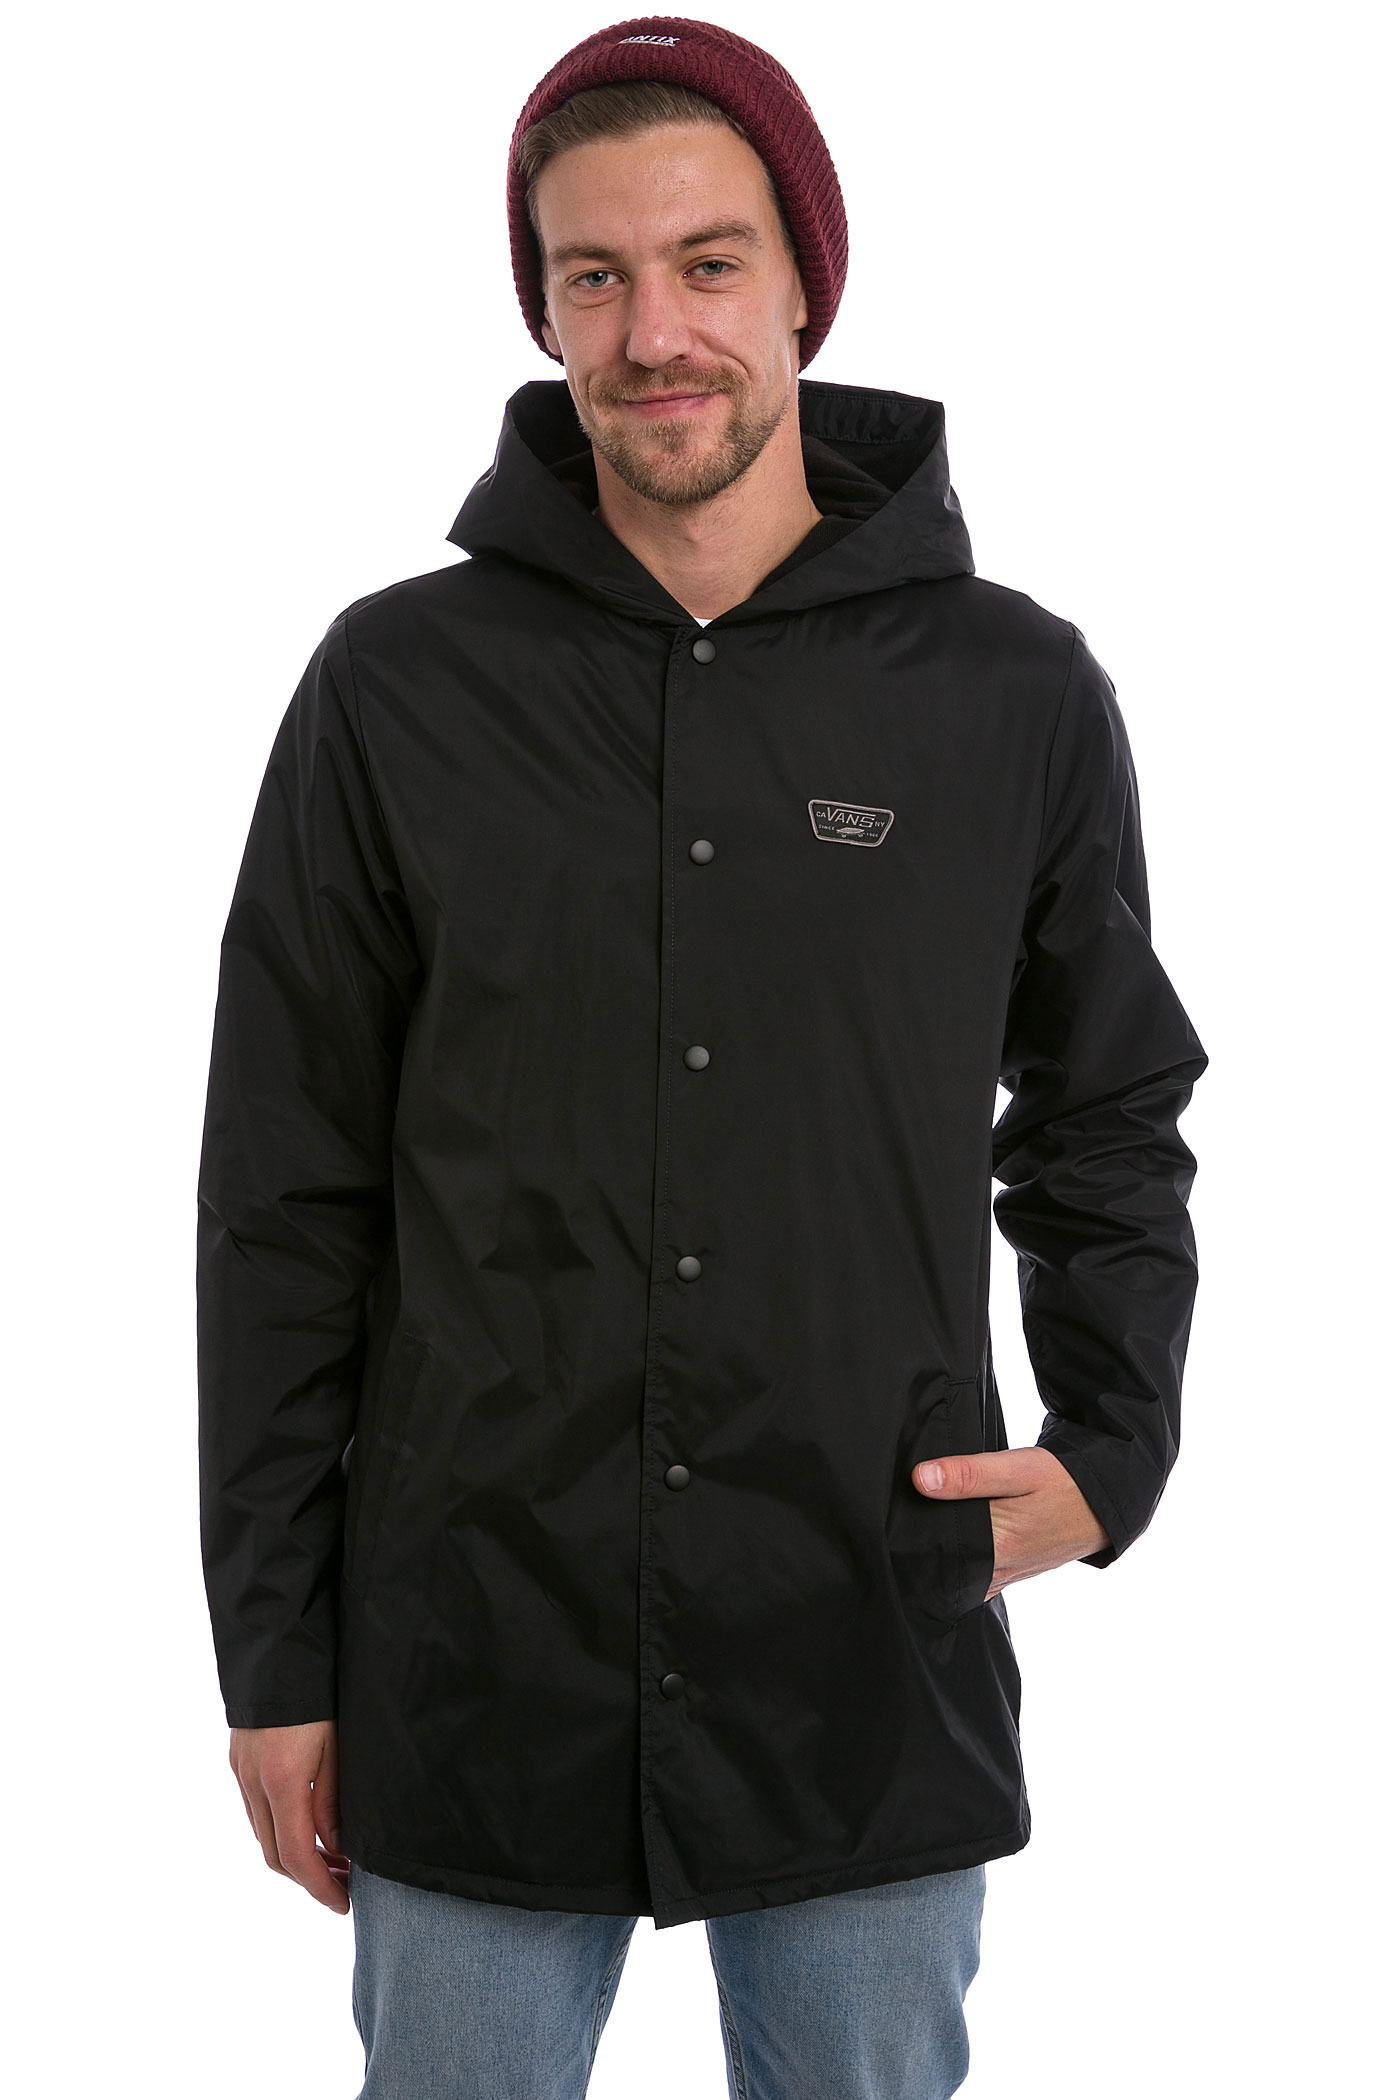 Vans Turnstall Parka Jacket (black) buy at skatedeluxe